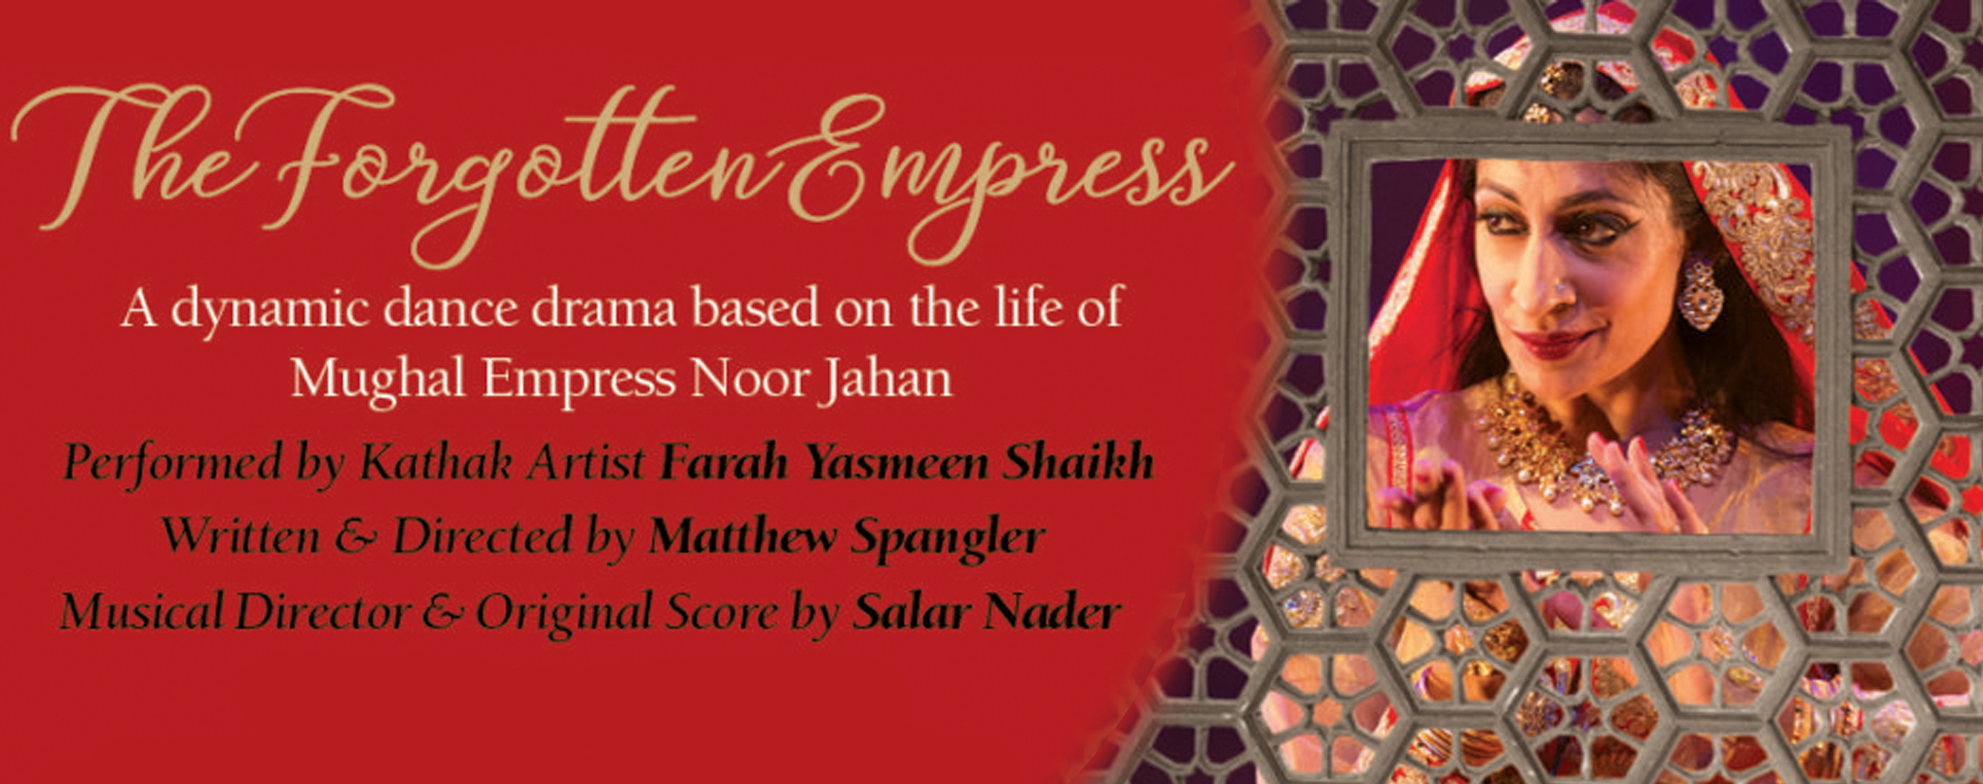 The Forgotten Empress | Farah Yasmeen Shaikh